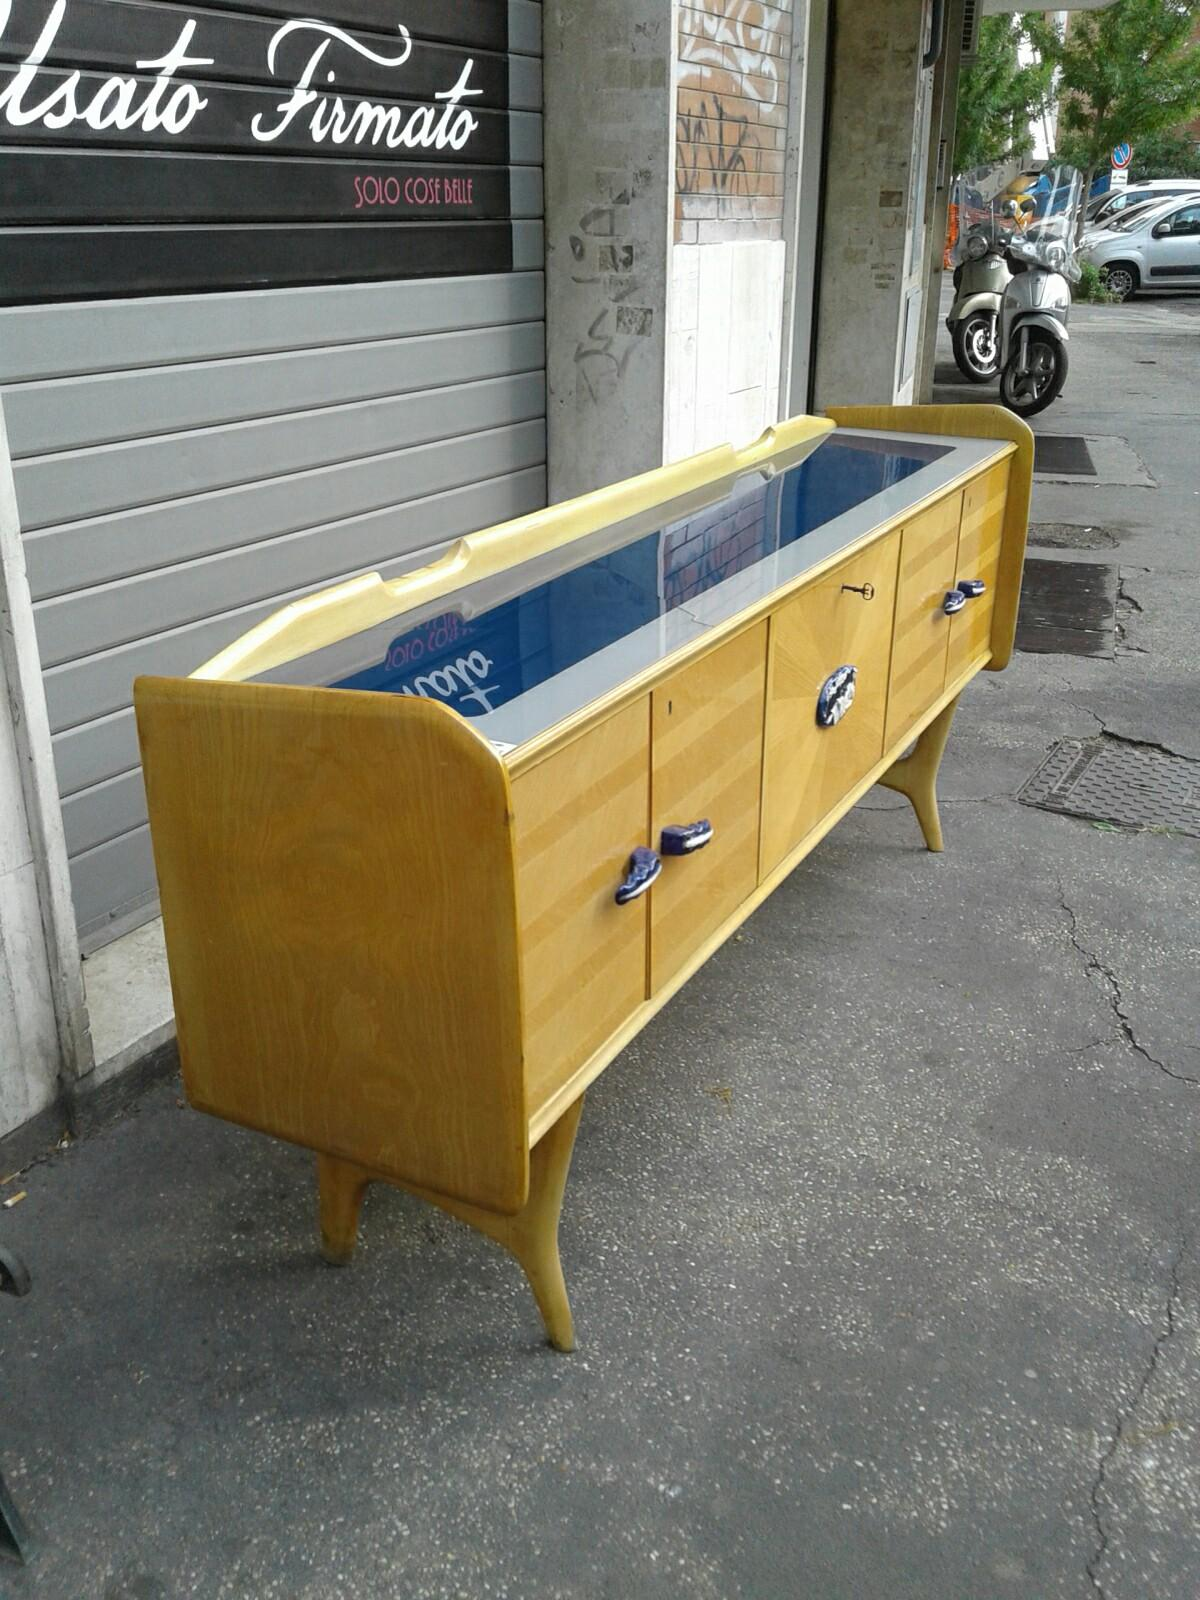 buy popular f49ef 787d4 Madia vintage mobile bar anni 50-60 in 00174 Roma für € 300 ...